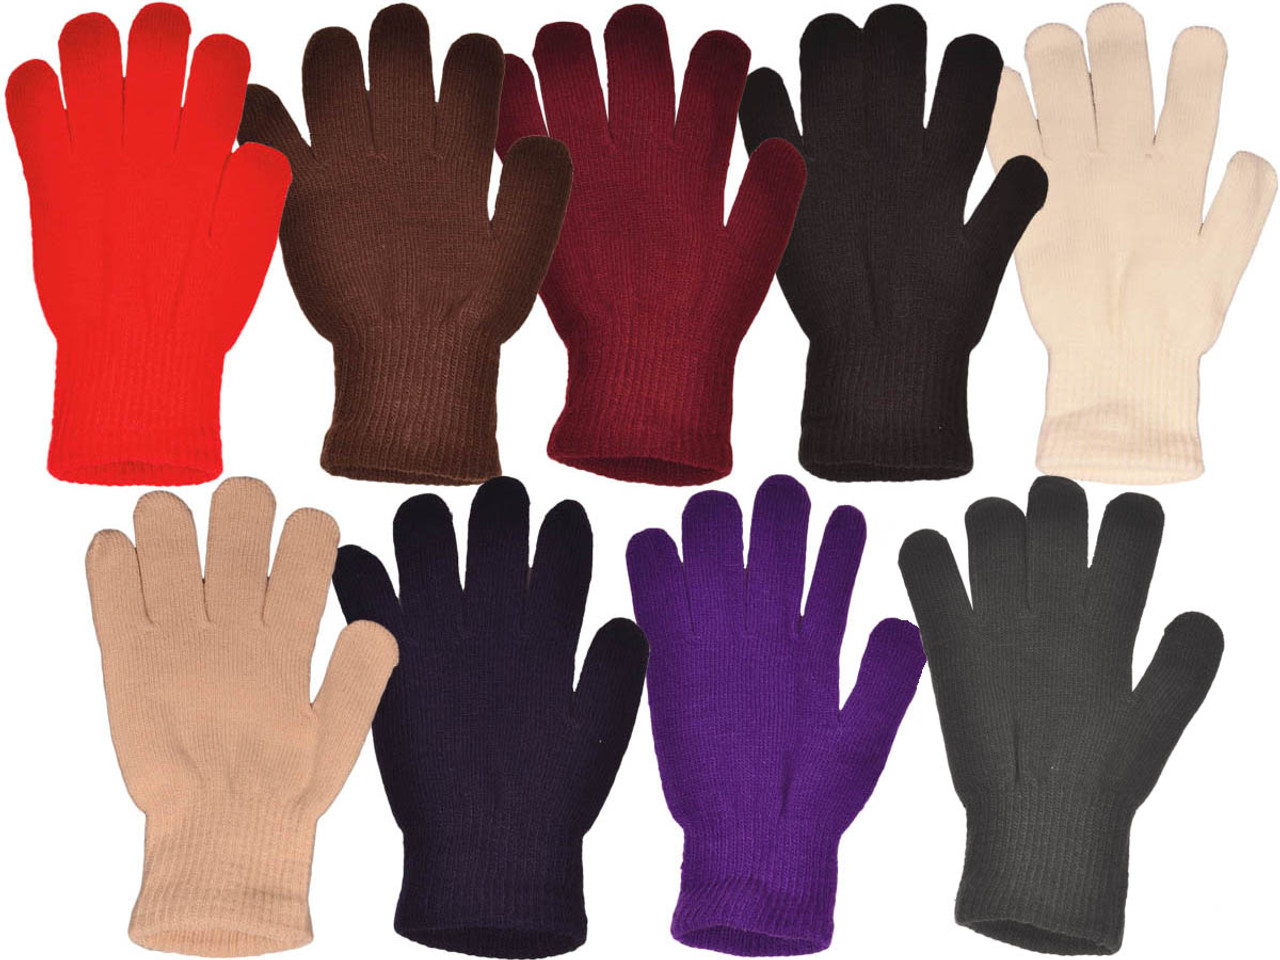 High Desert Gear Unisex Winter Knit Magic Gloves Novelty Colors One-Size Fits Most Adults Teenagers 12 Pairs 1 Dozen